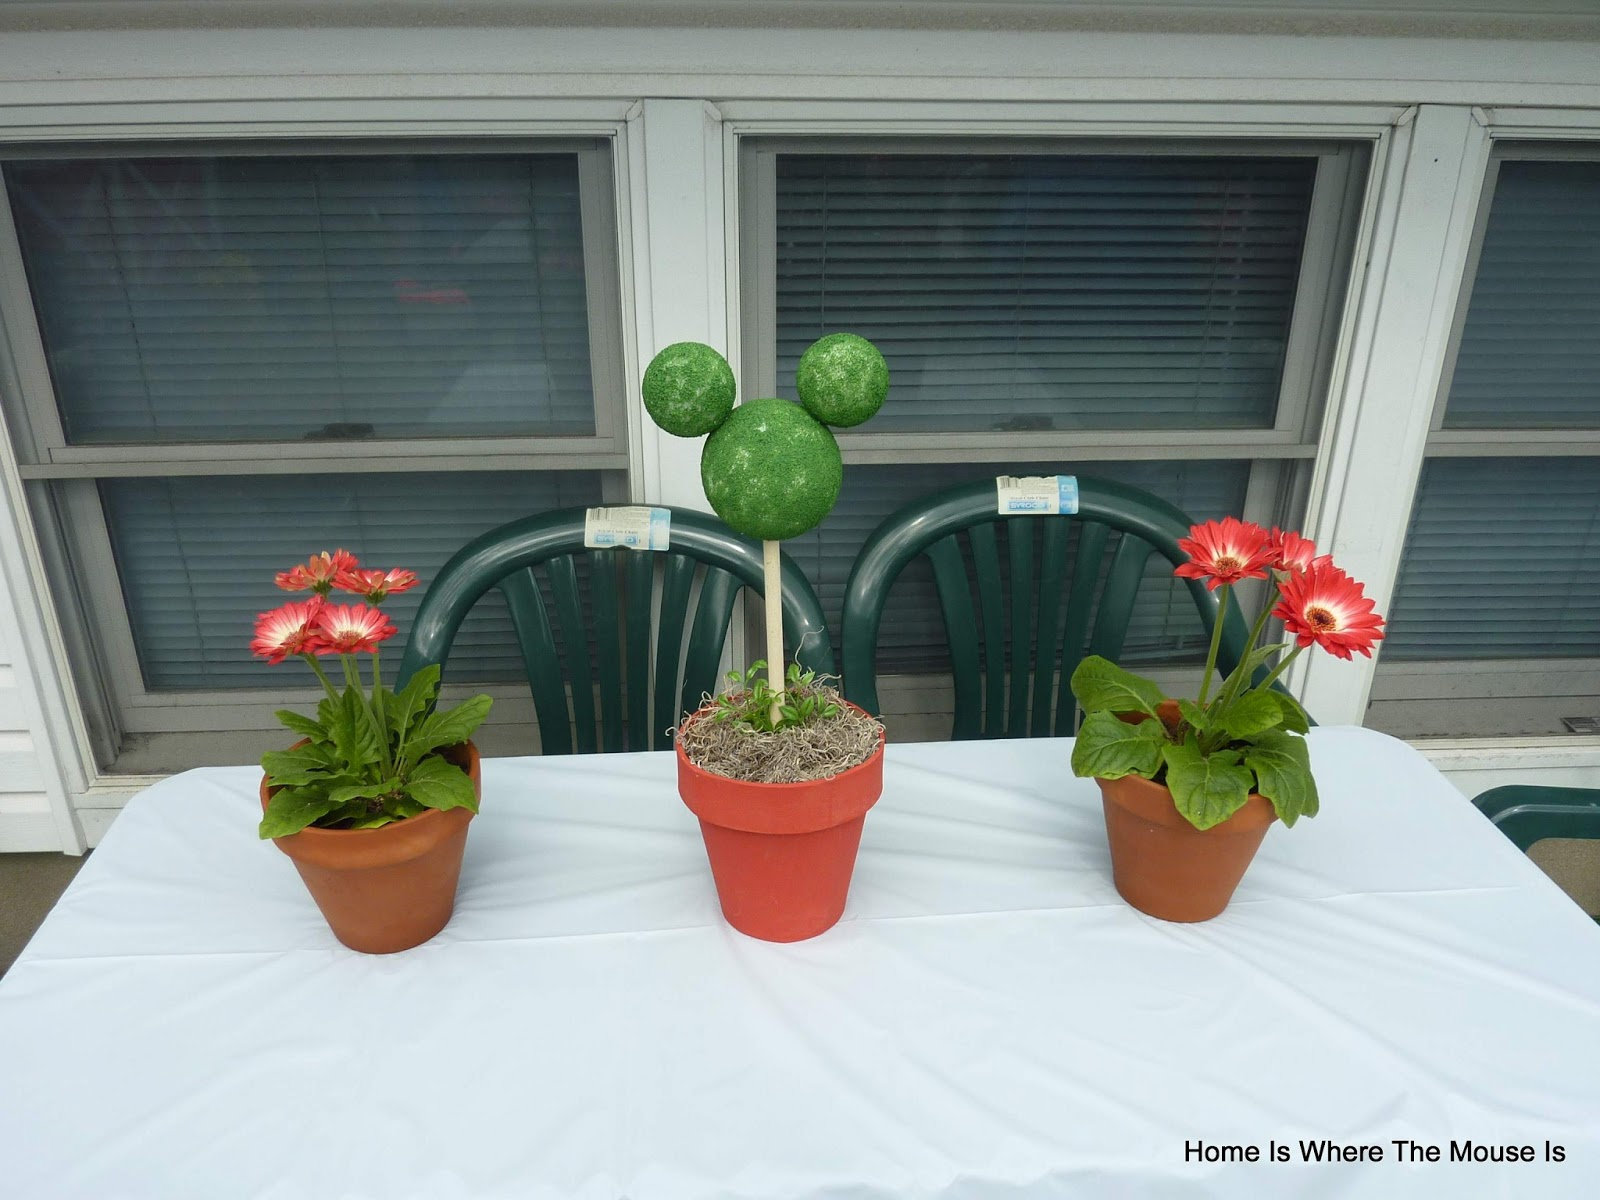 This simple topiary craft is made from styrofoam and paint